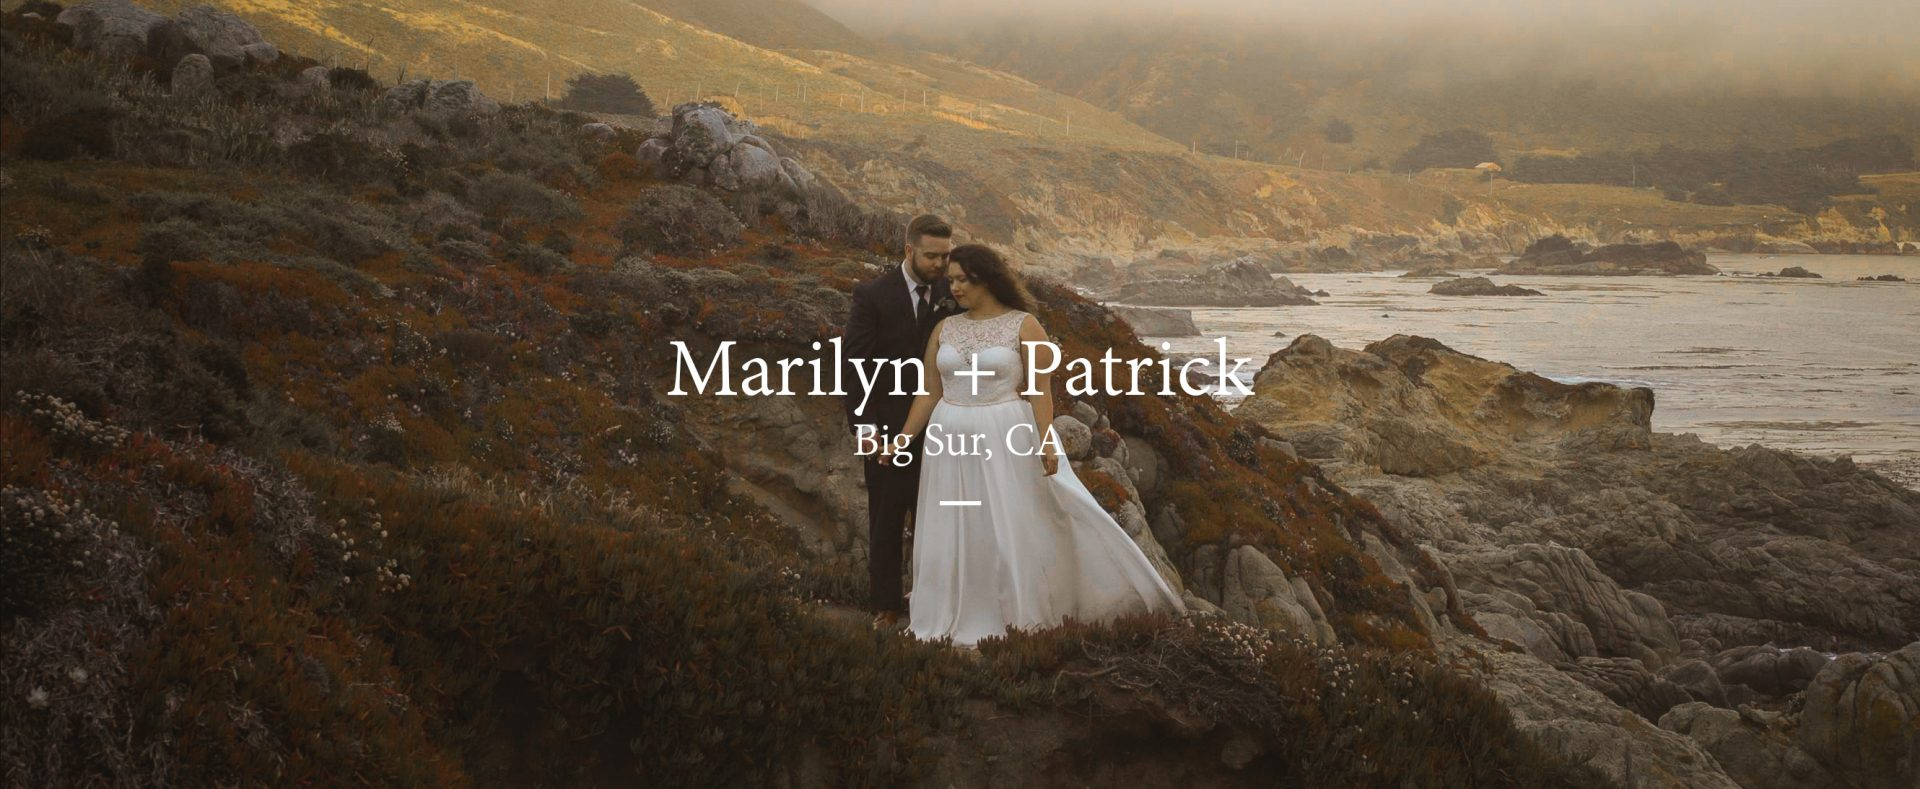 Marilyn + Patrick | Big Sur, California | Big Sur